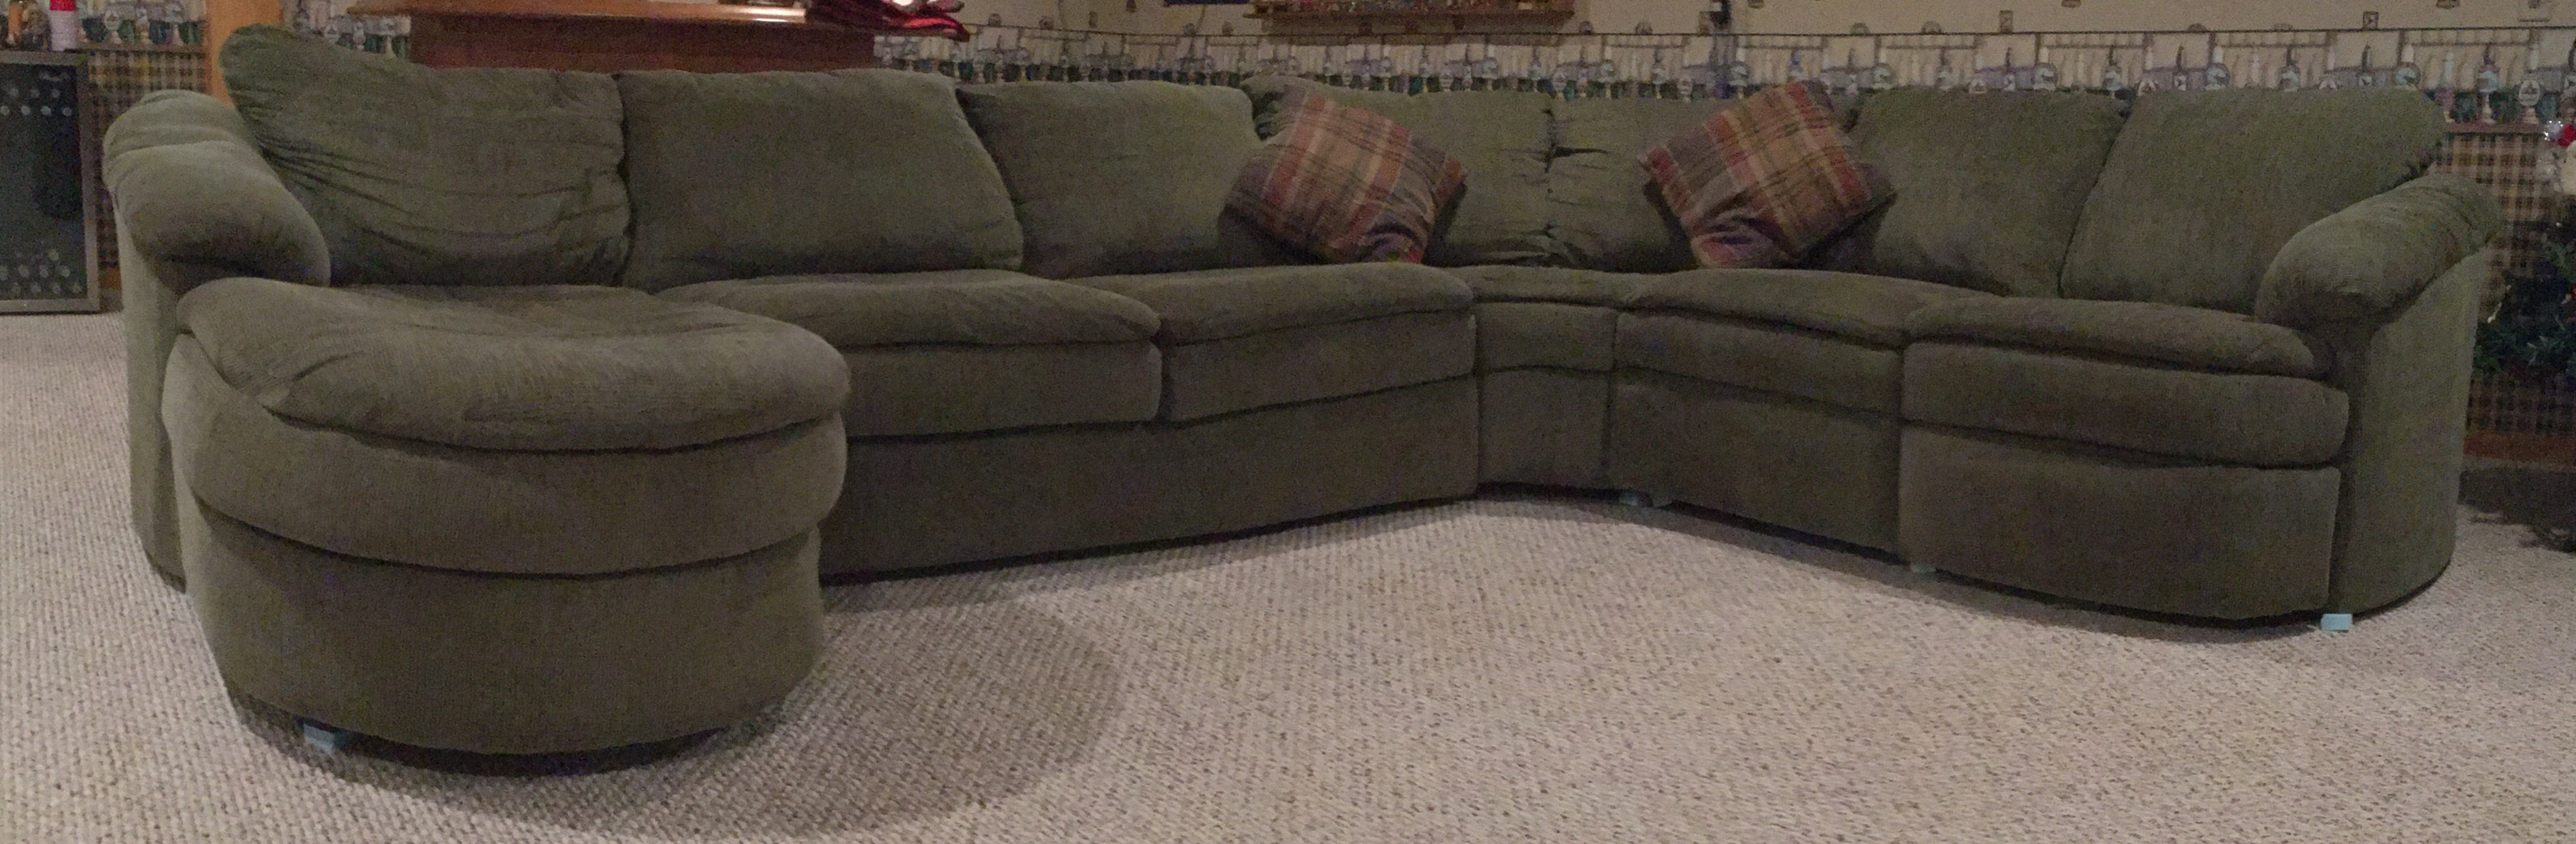 Large Sectional Sofa Cleaned and deodorized in the Fox Valley area